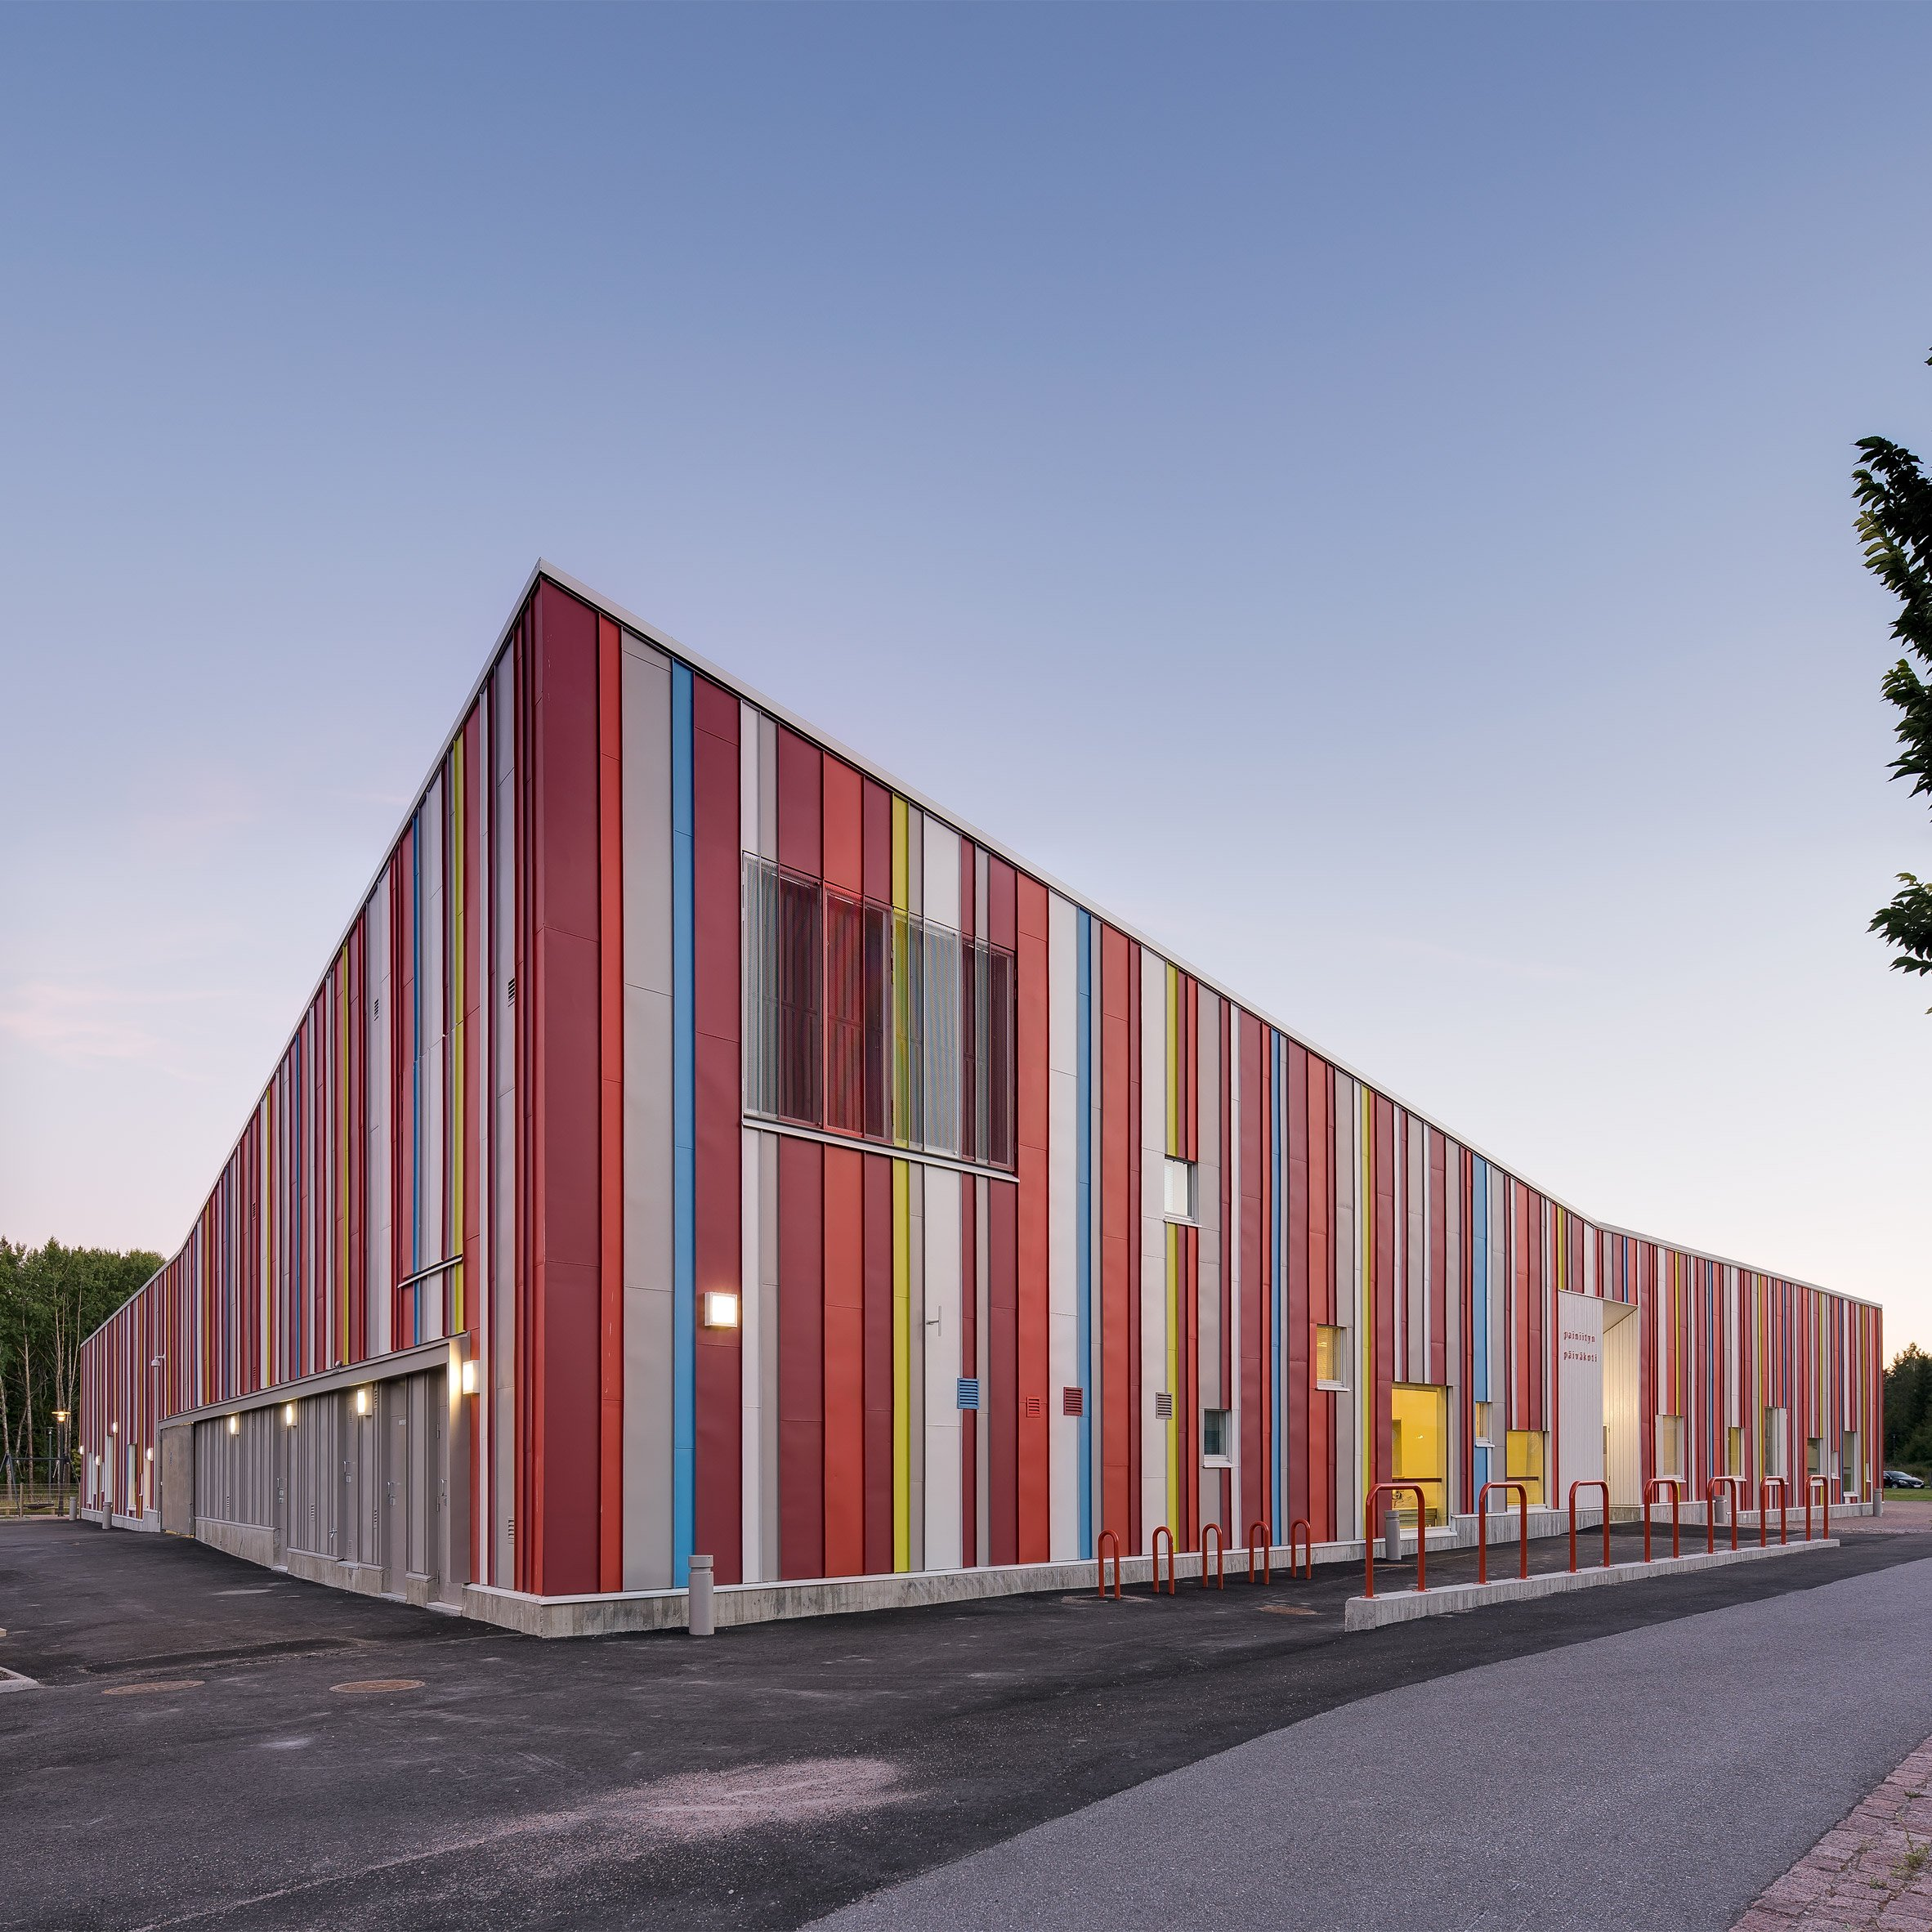 AFKS wraps horseshoe-shaped kindergarten in stripy multicoloured metal cladding